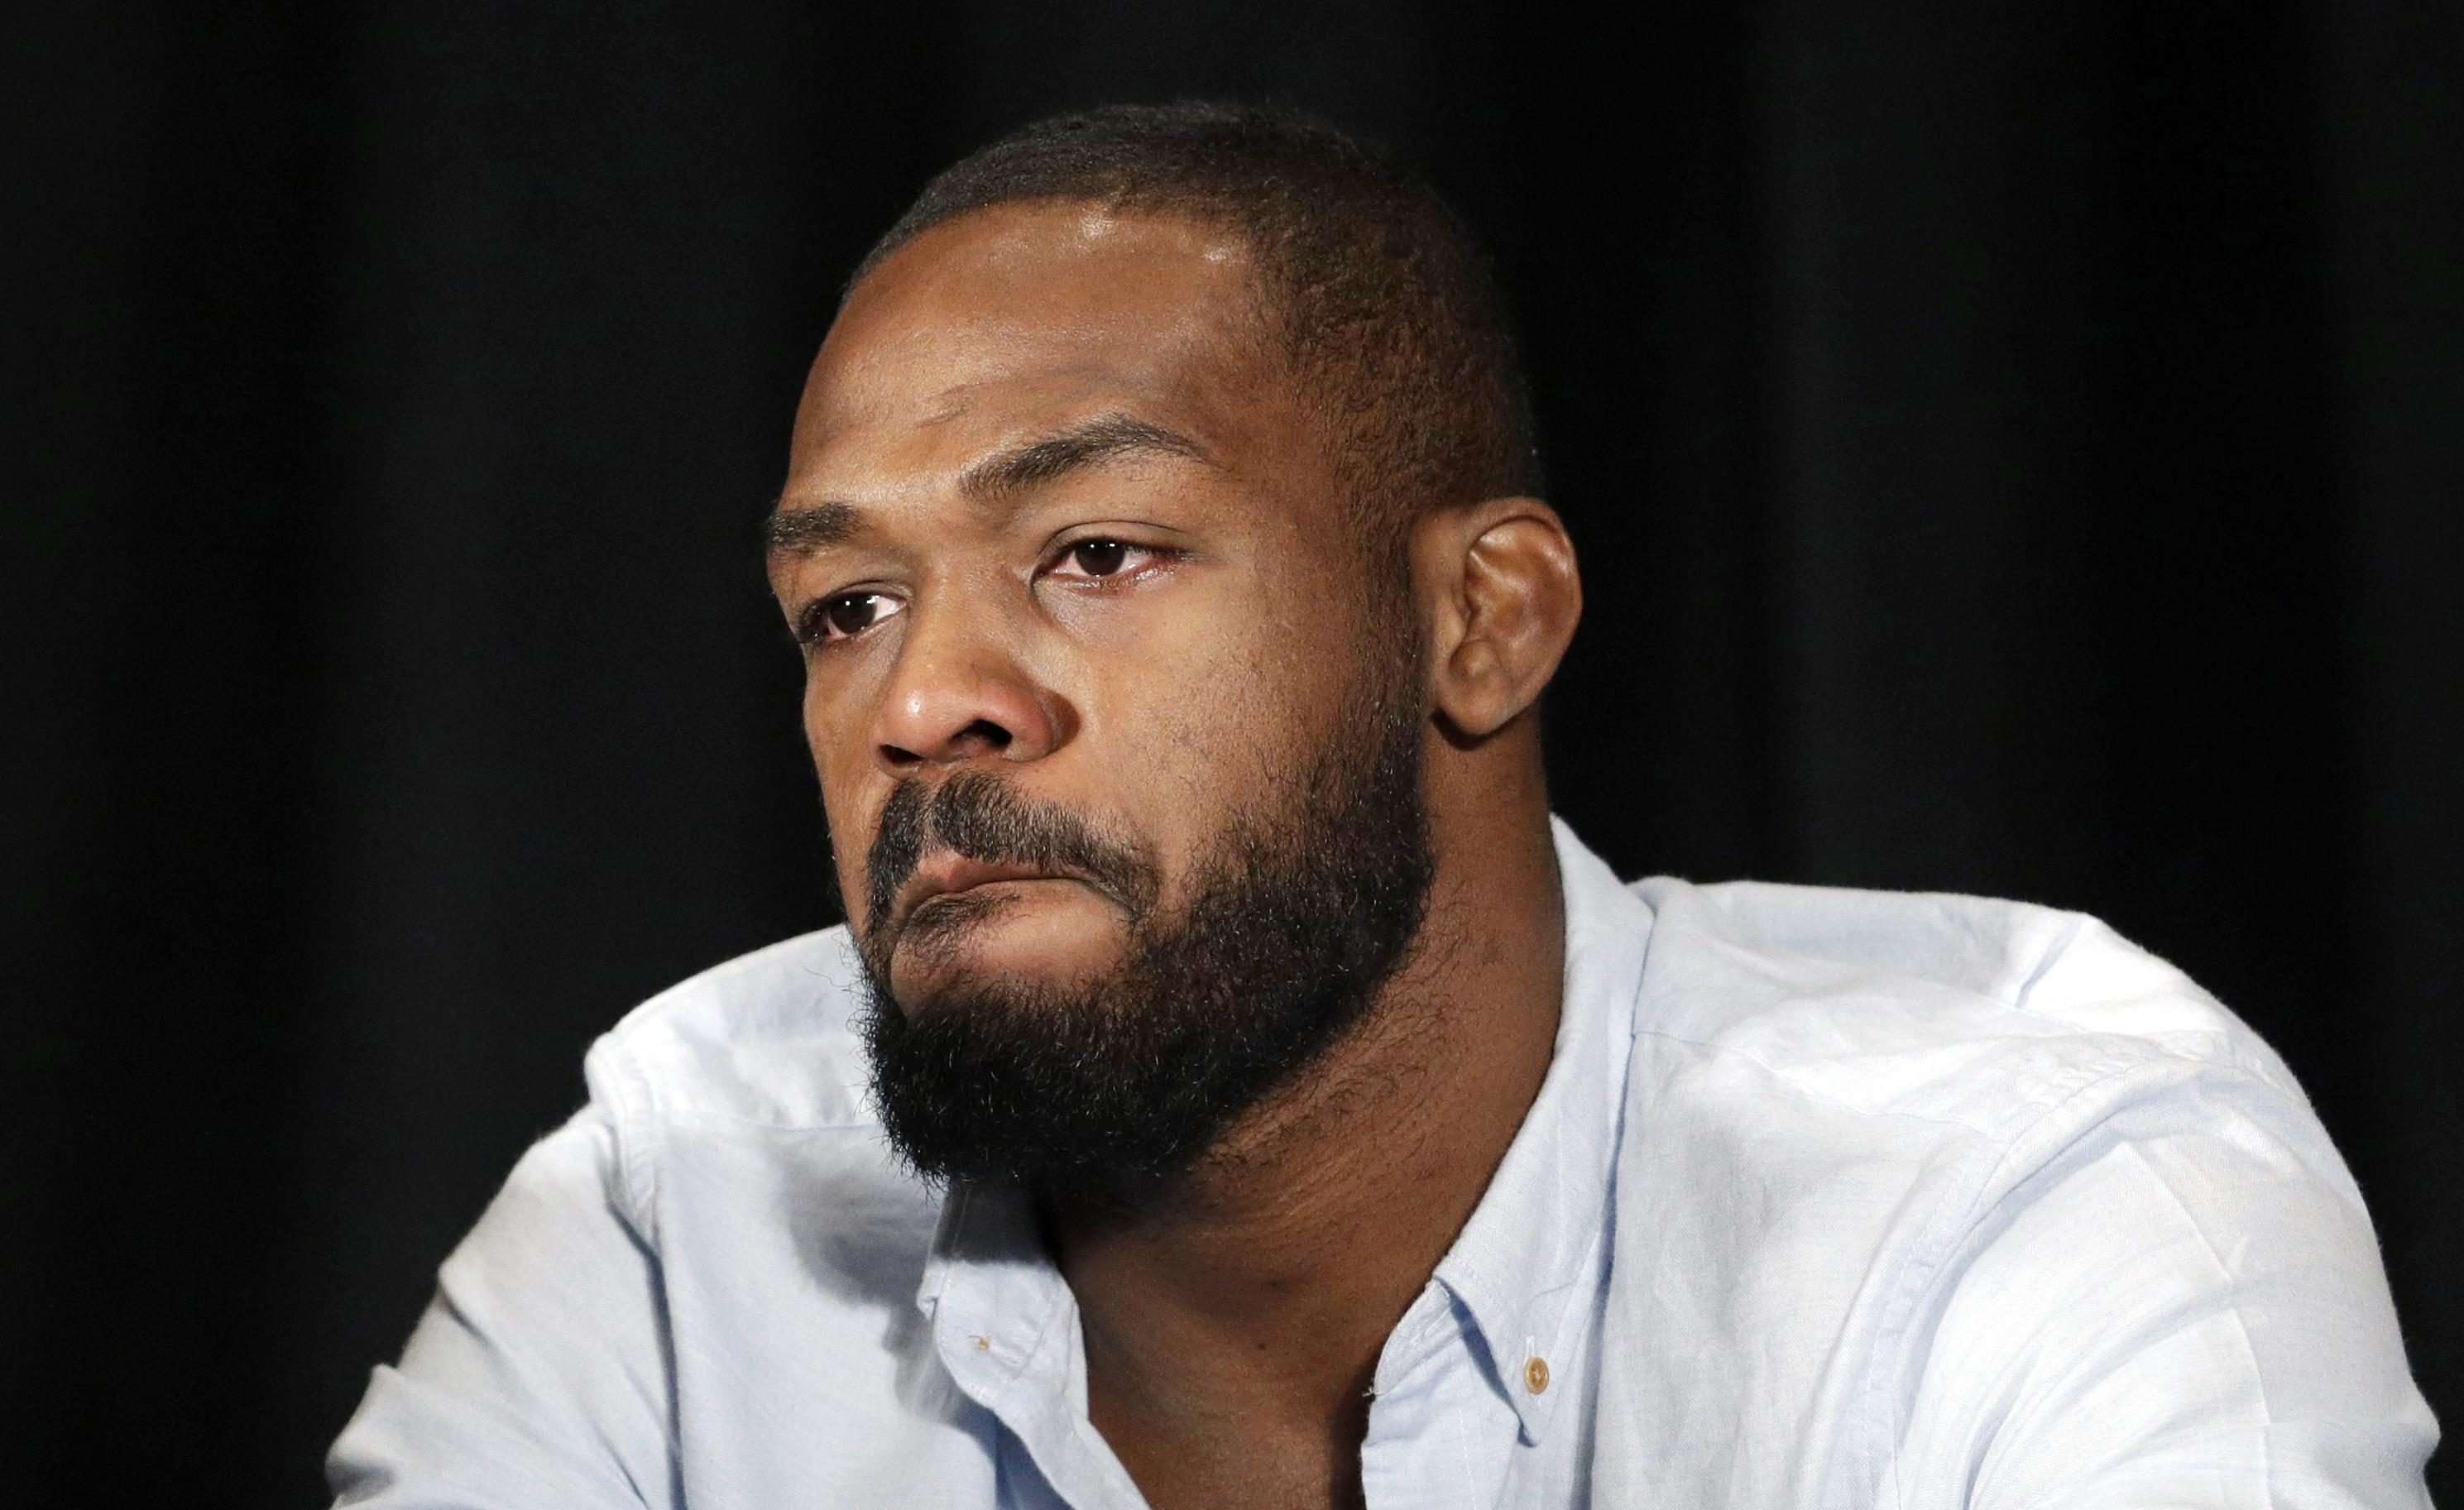 Jon Jones faces the end of his amazing MMA career if he is suitably published for newest offence